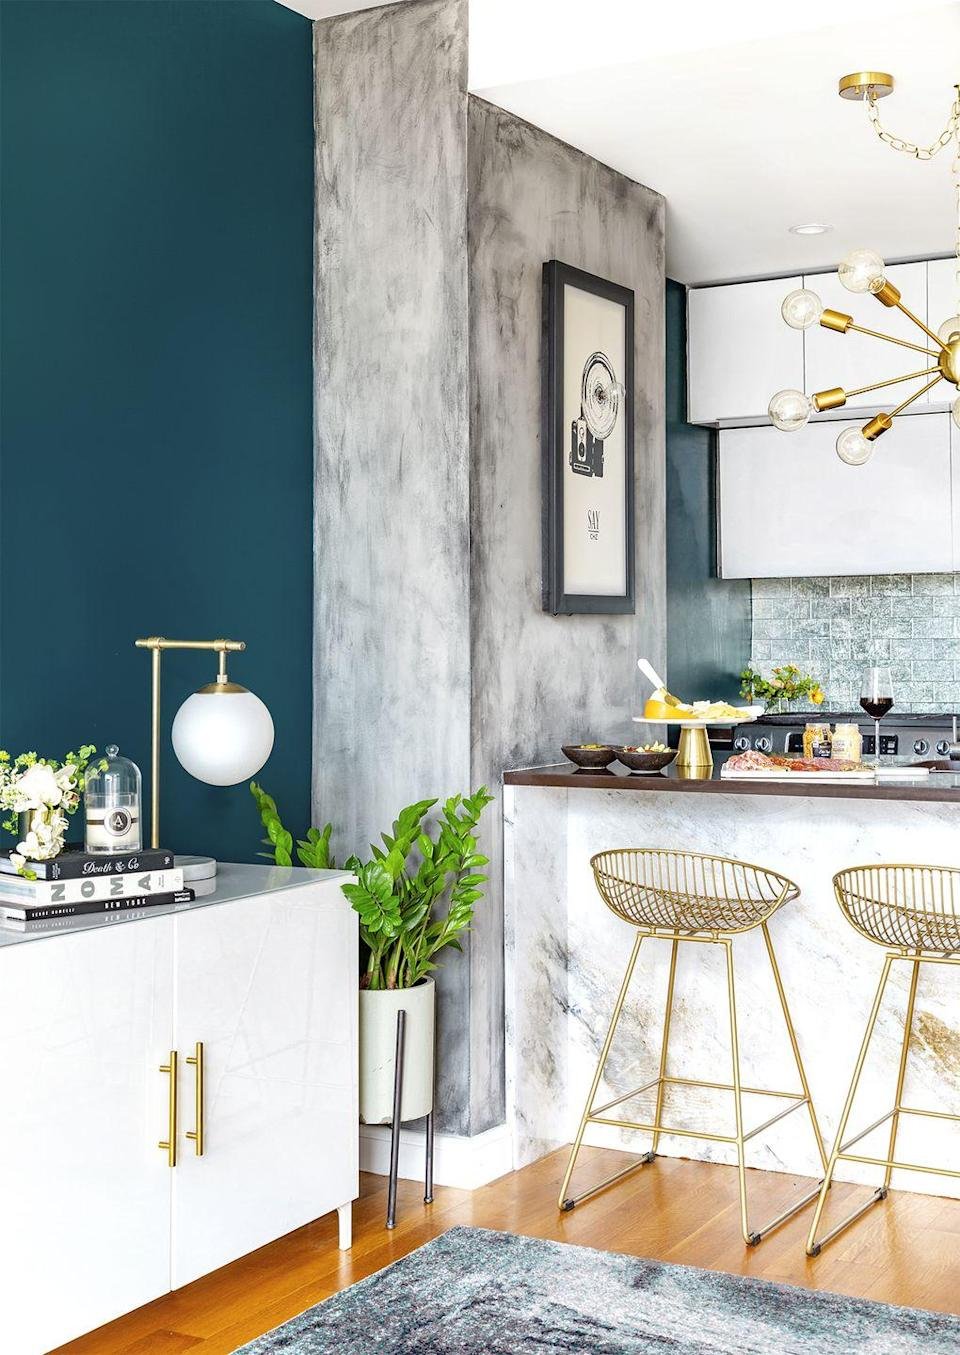 """<p>Bring different textures into your space by painting a concrete-inspired wall. Once you gather your grey paint, dry paintbrush, and lint-free cloth, follow a forgiving buffing technique until you nail your desired look. </p><p><strong>RELATED:</strong> <a href=""""https://www.goodhousekeeping.com/home/renovation/advice/a18680/how-to-paint-a-room/"""" rel=""""nofollow noopener"""" target=""""_blank"""" data-ylk=""""slk:How to Paint a Room"""" class=""""link rapid-noclick-resp"""">How to Paint a Room </a></p>"""